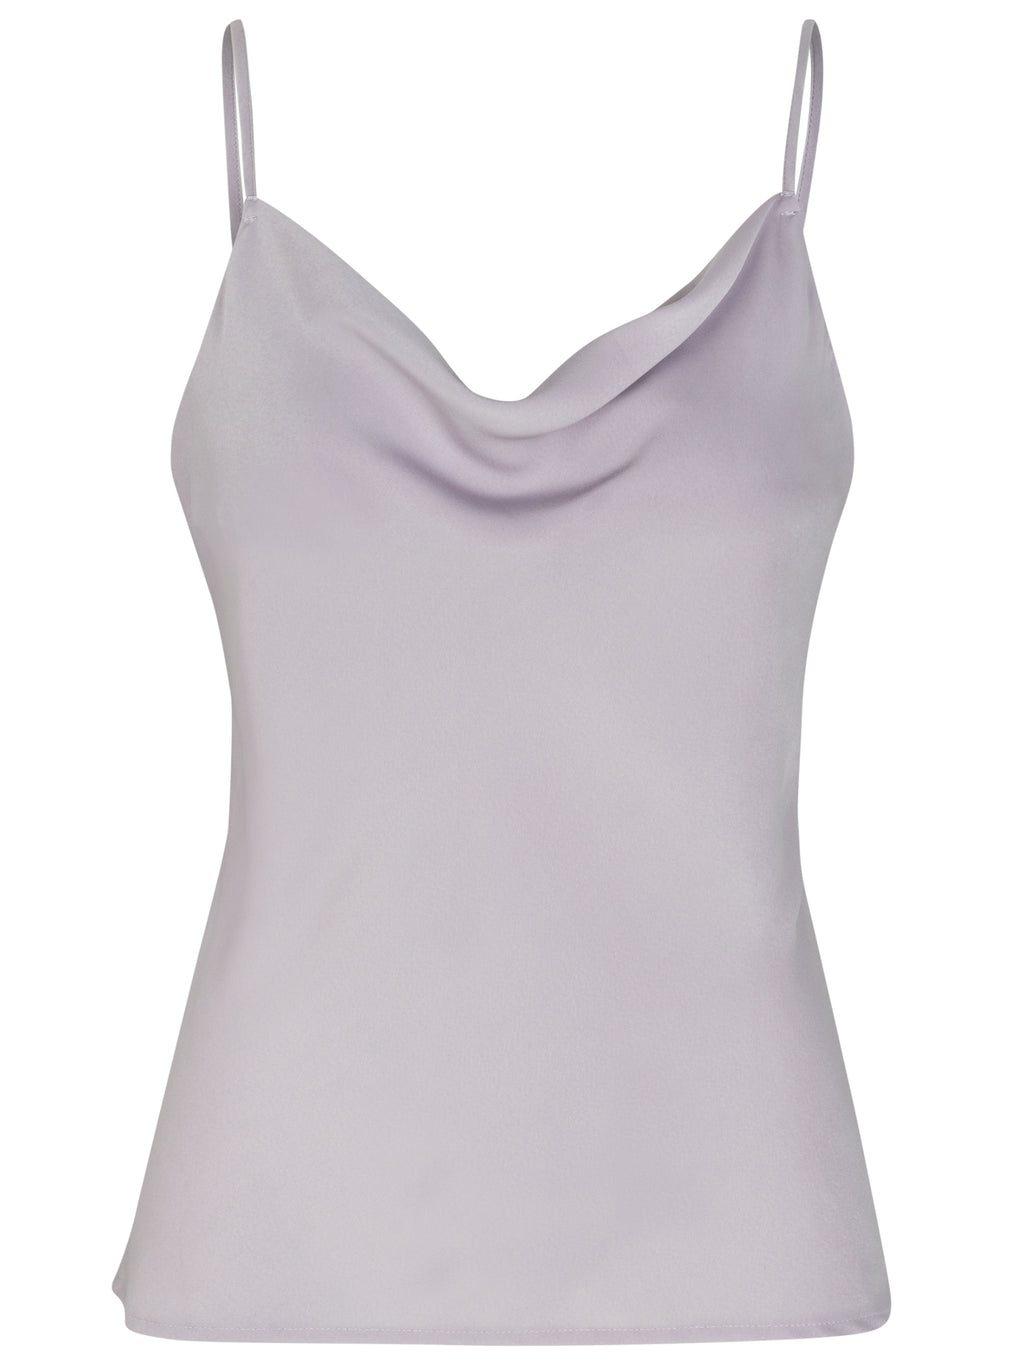 Rosemunde - strap top iris purple